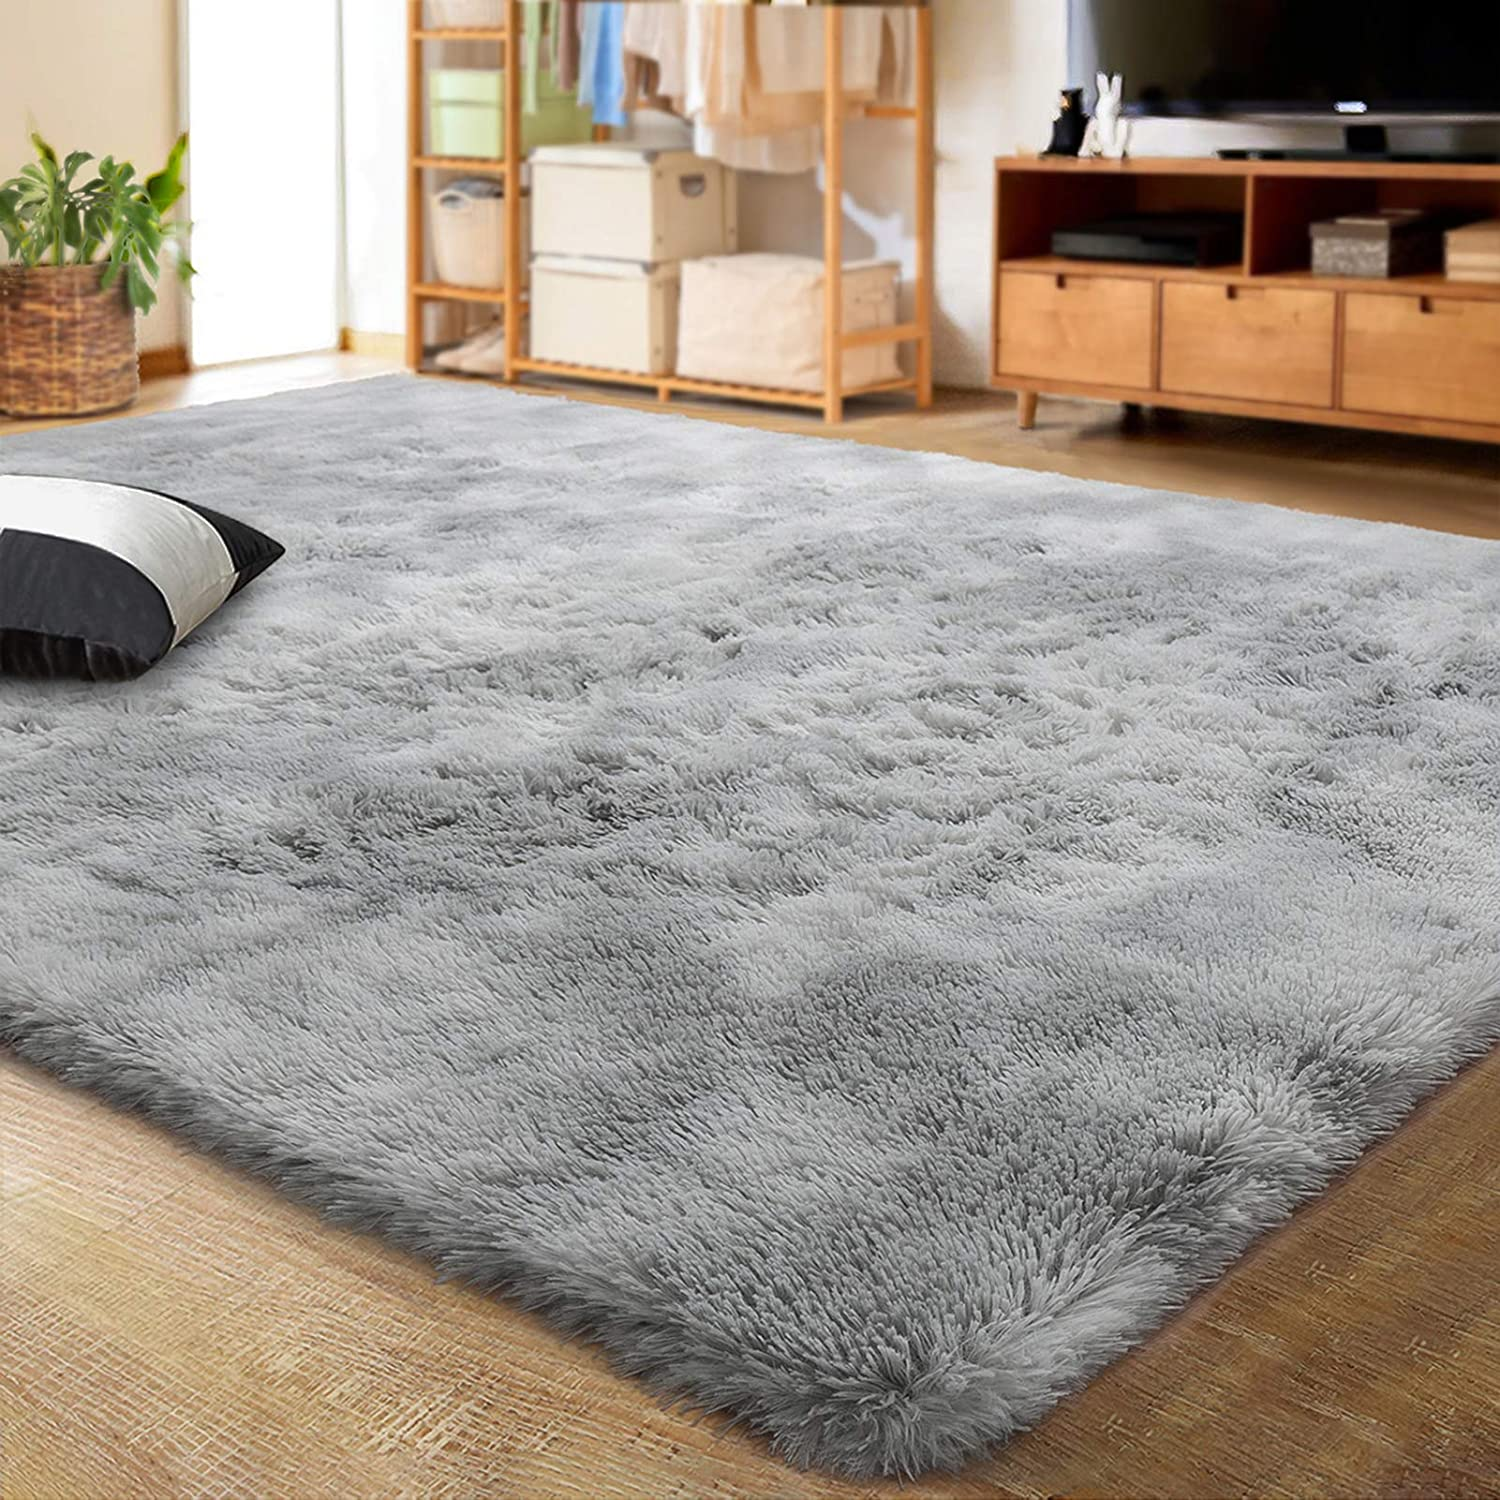 Lochas Luxury Velvet Shag Area Rug Modern Indoor Fluffy Rugs Extra Comfy And Soft Carpet Abstract Accent Rugs For Bedroom Living Room Dorm Home Girls Kids 5x8 Feet Light Gray Kitchen